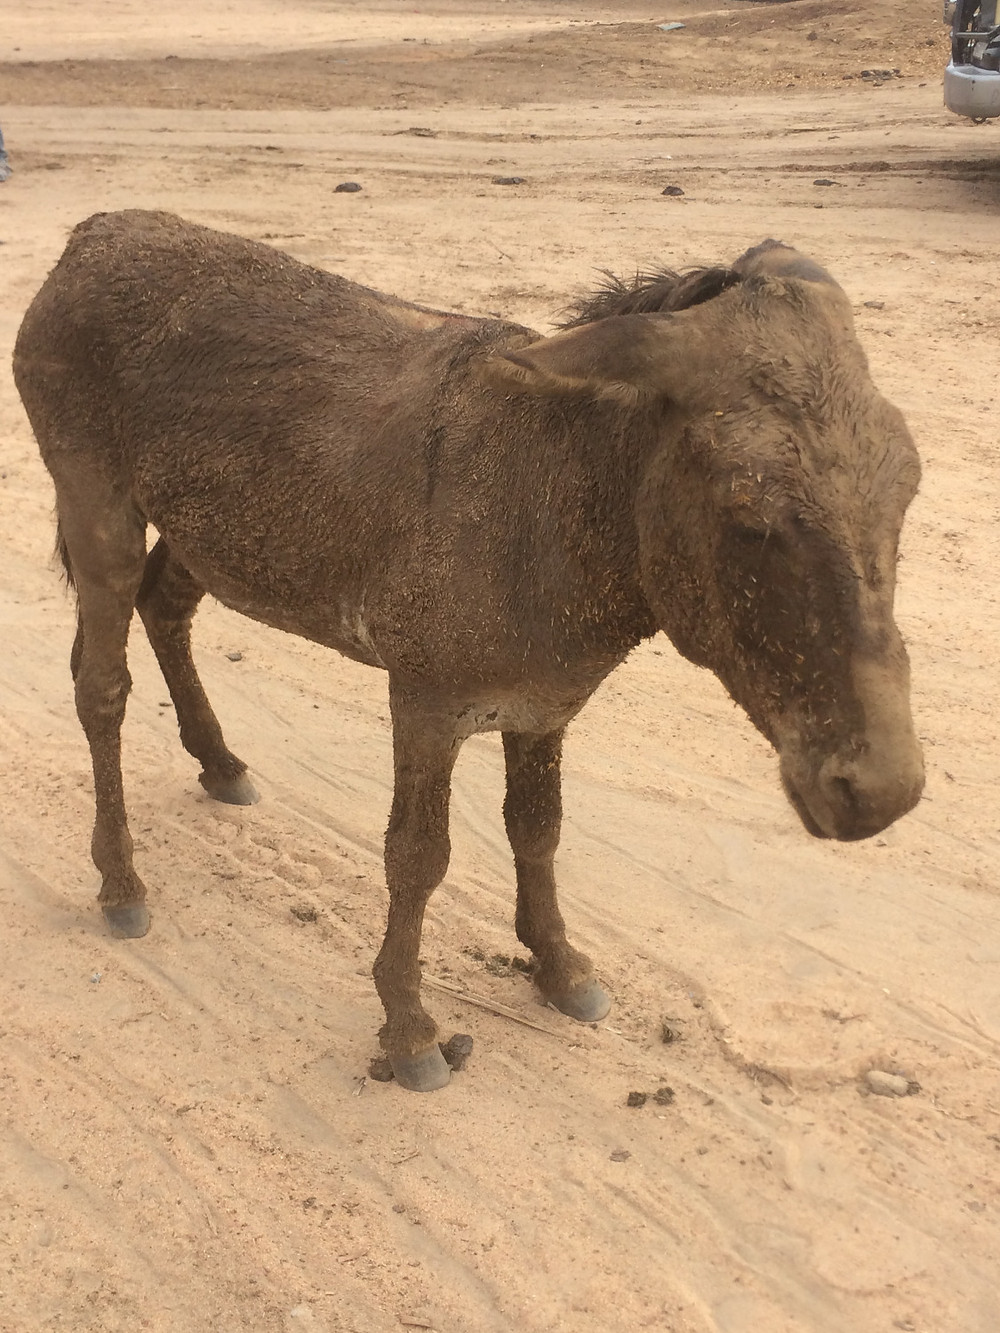 Donkey arrives at the holding facility prior to slaughter